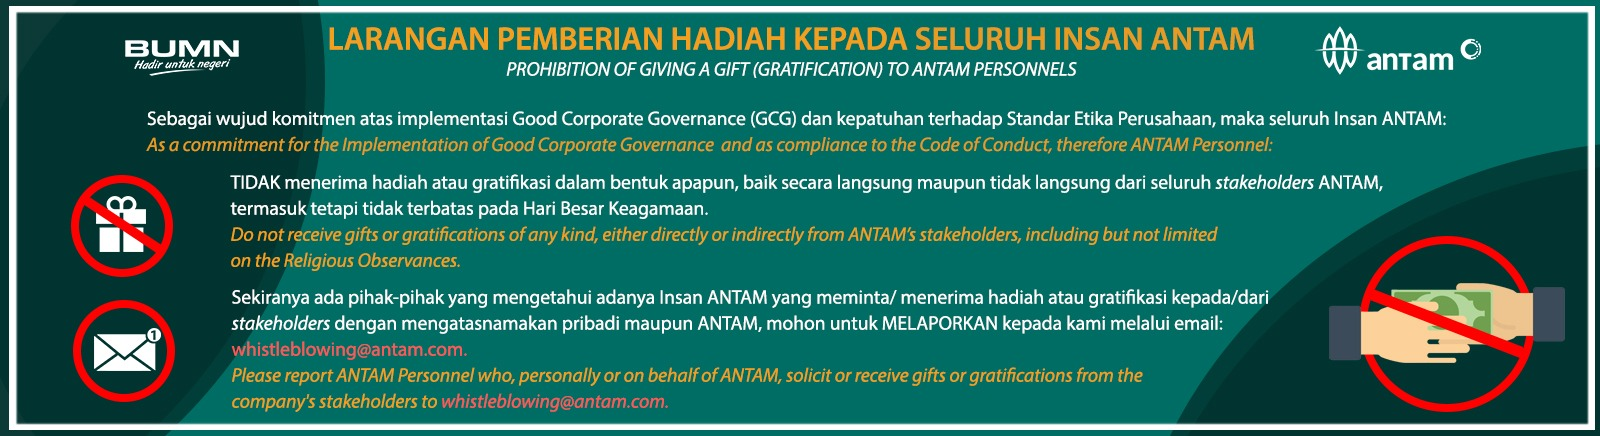 Prohibition of Giving A Gift (Gratification) to ANTAM Personnels